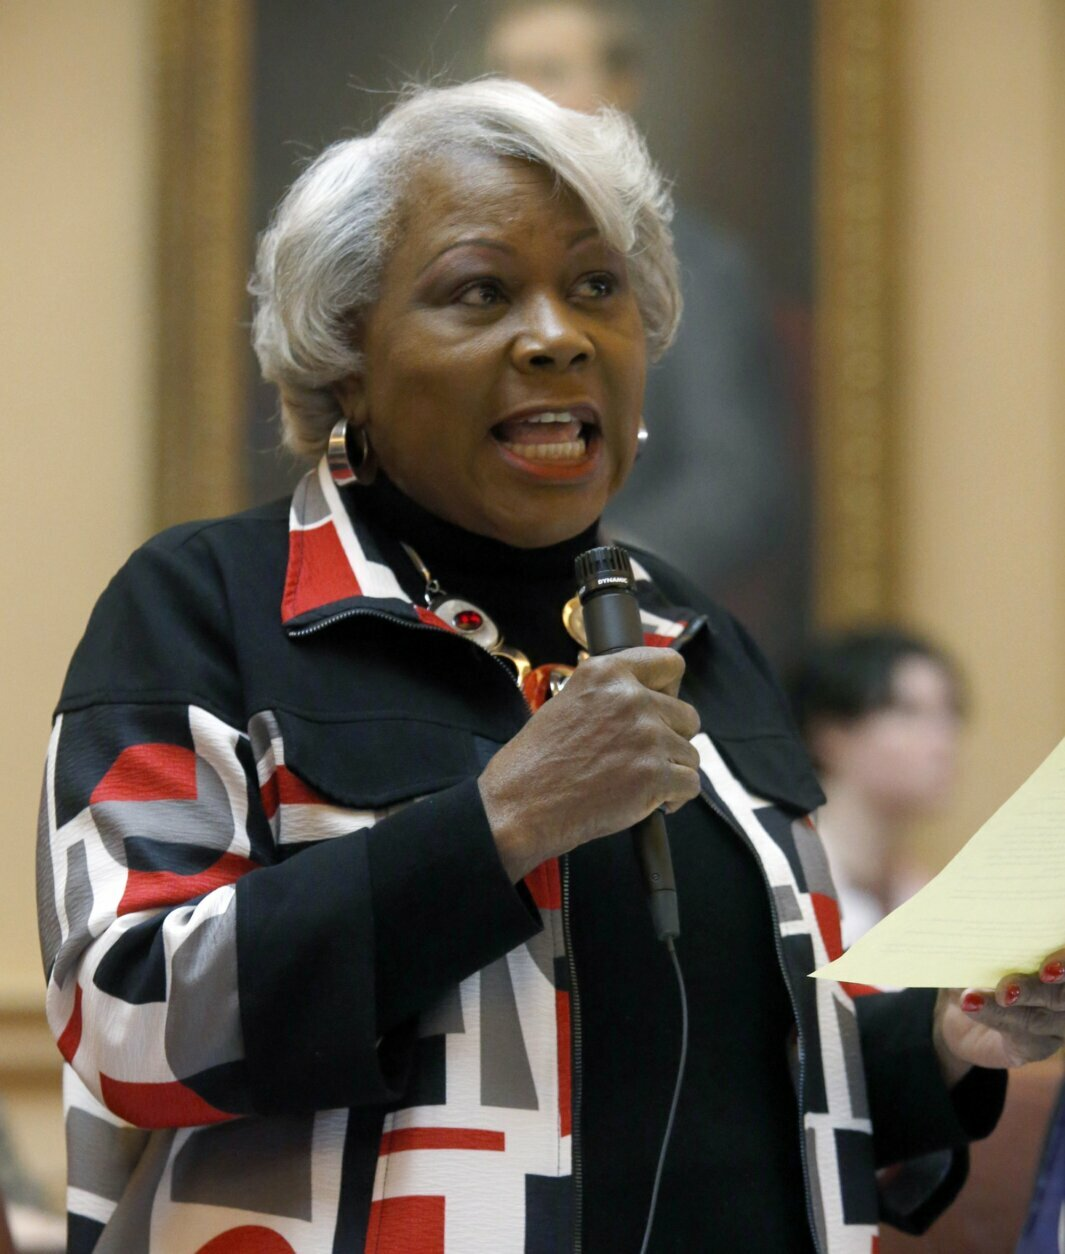 State Sen. Louise Lucas, D-Portsmouth, speaks for her Universal Background Check bill, one of a number of gun-related bills that were debated in the Senate, Thursday, Jan. 16, 2020, at the Capitol in Richmond, Va. (Bob Brown/Richmond Times-Dispatch via AP)